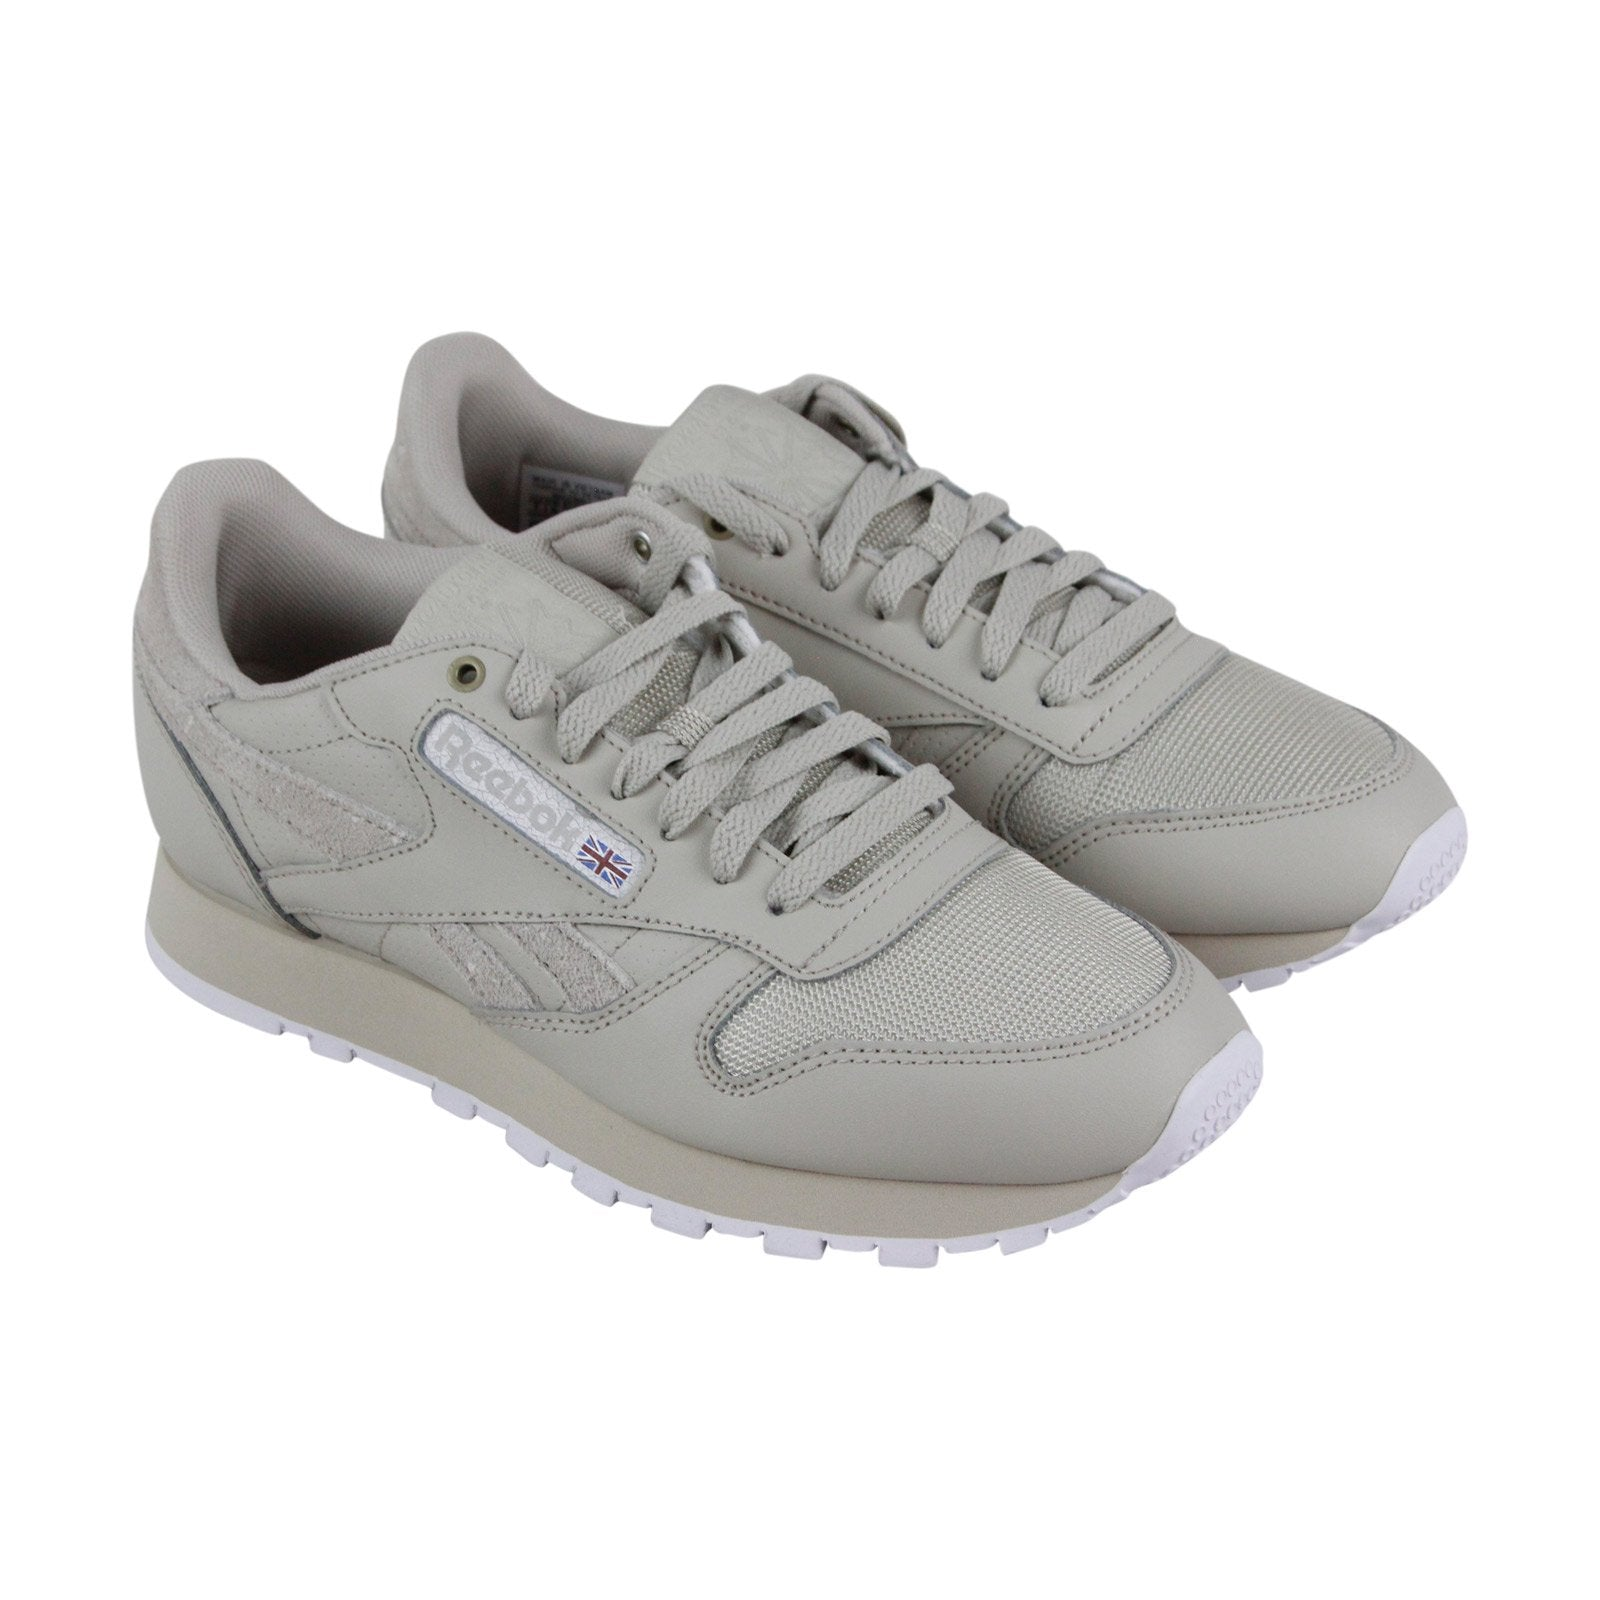 Reebok Classic Leather Mens Gray Leather Low Top Lace Up Sneakers Shoes